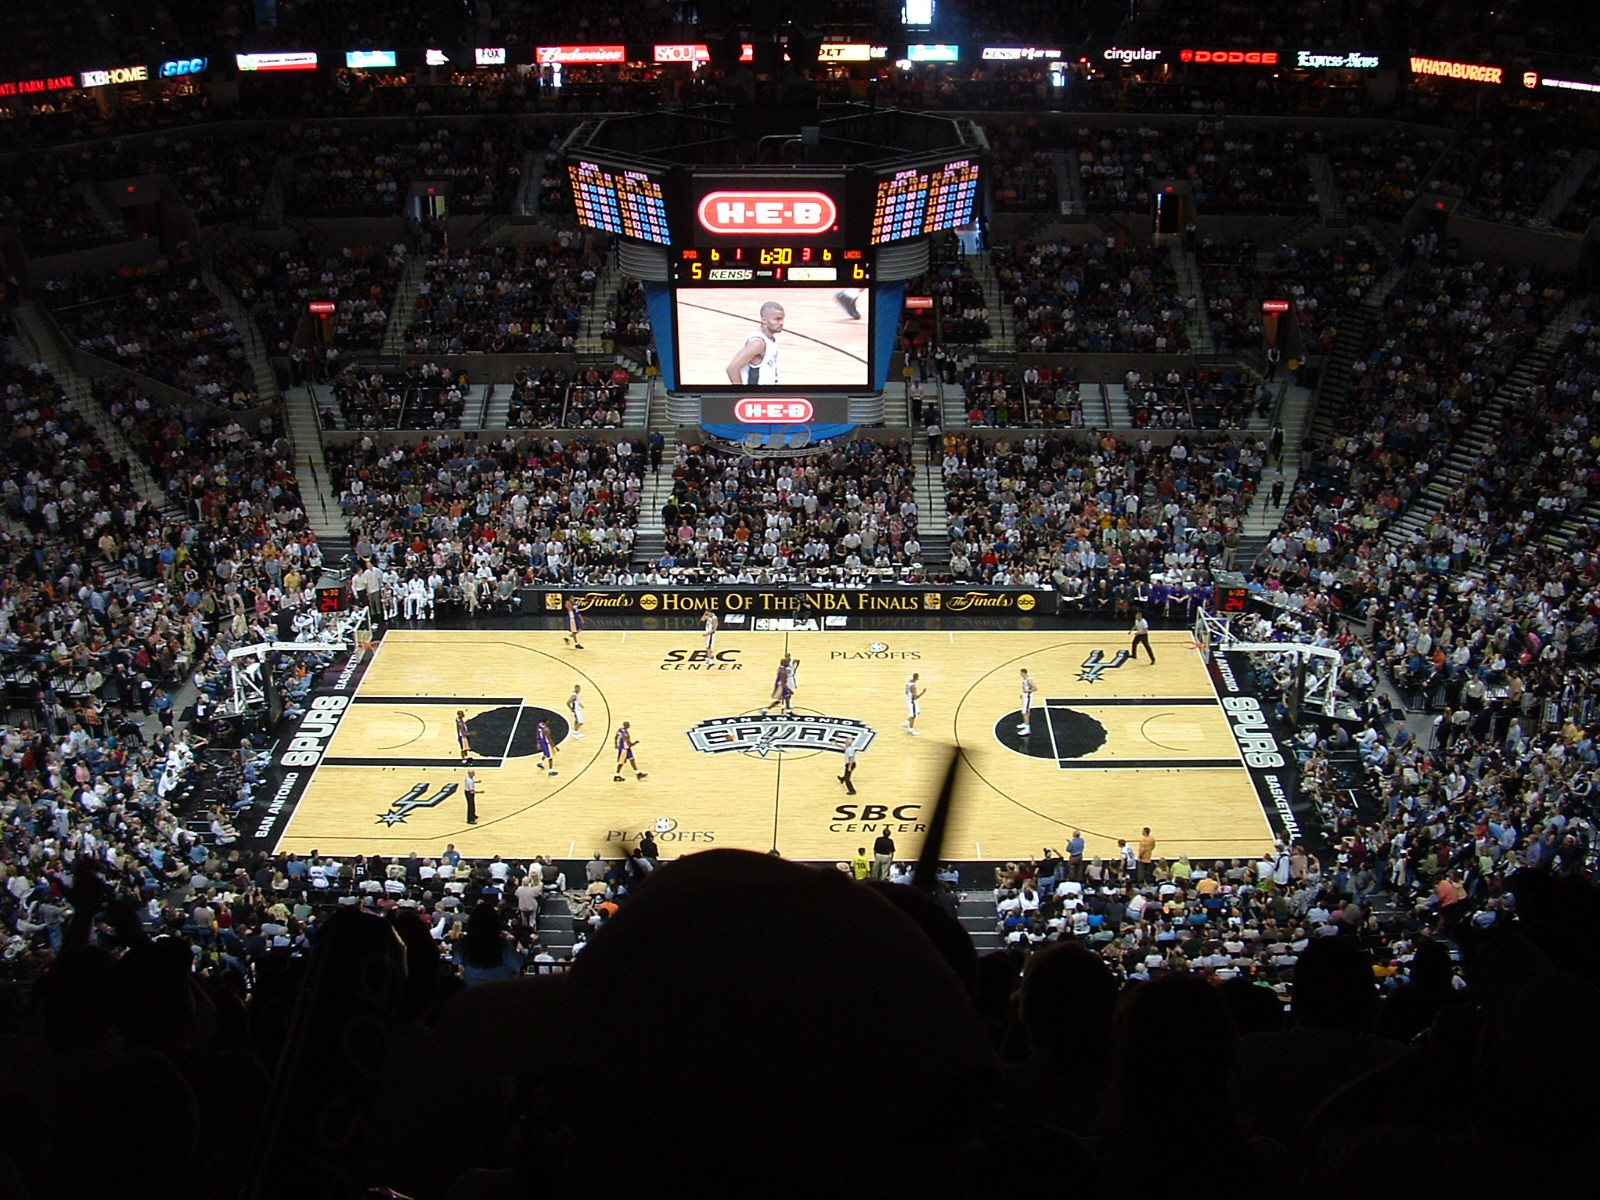 image about San Antonio Spurs Schedule Printable named 200304 San Antonio Spurs period - Wikipedia